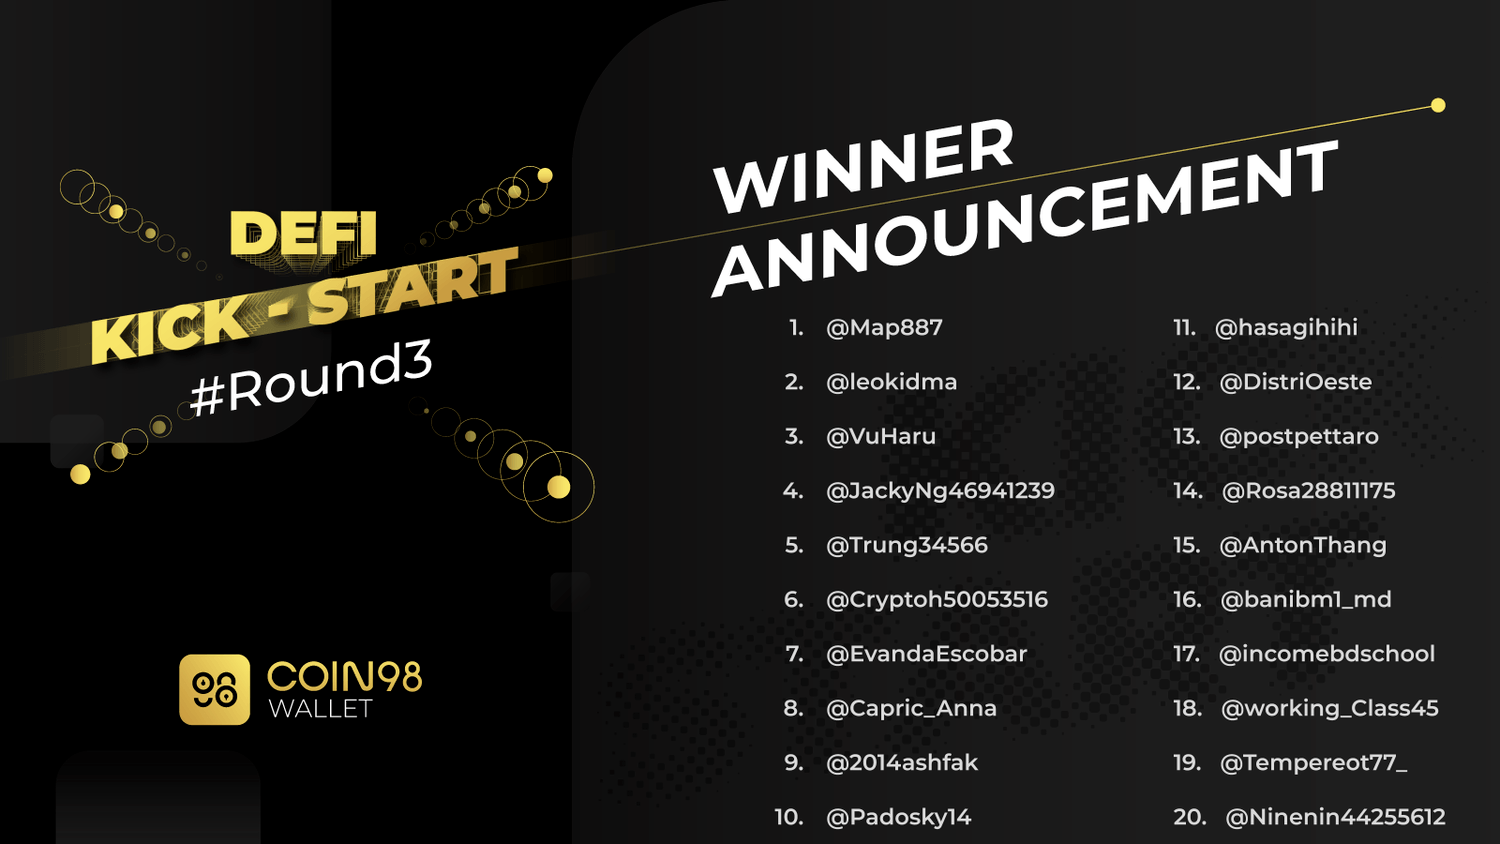 Defi Kick Start Round 3 - Winner Announcement